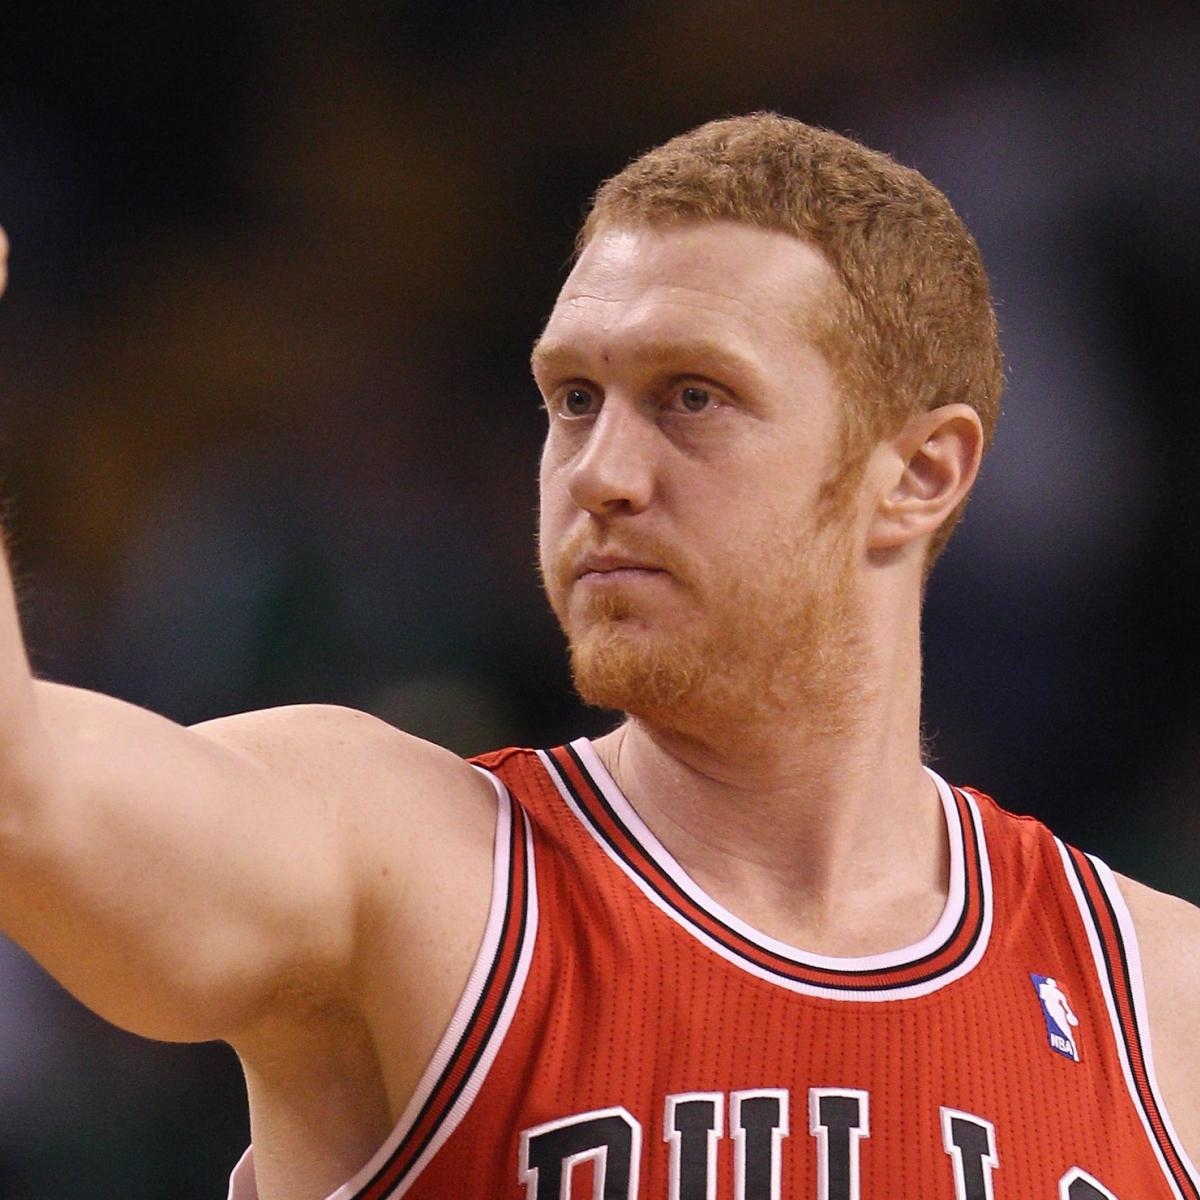 News Memes Andhighlights: The White Mamba: What Makes People Love Brian Scalabrine